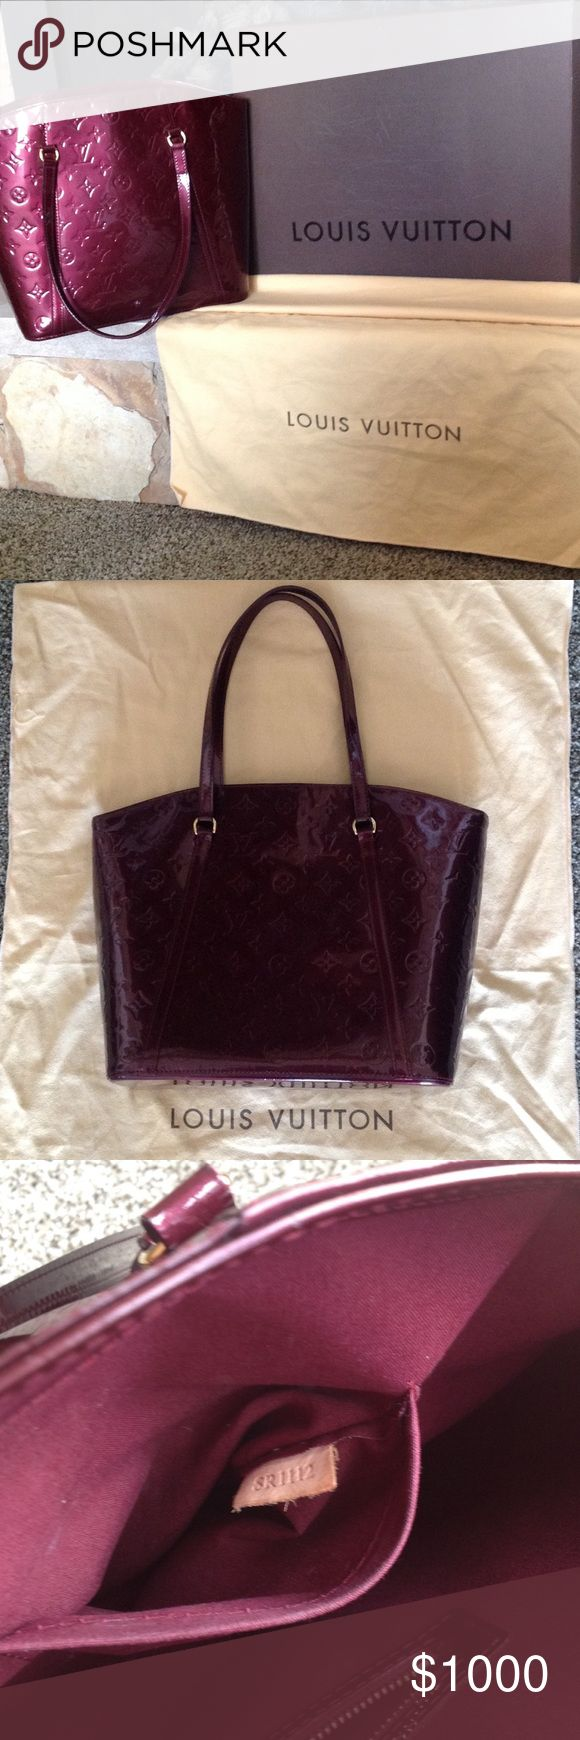 Louis  Vuitton Avalon GM handbag🎉🎉host pick 🎉🎉 Authentic Louis Vuitton handbag, price is firm, no offers will be taken, no trades. Measures 11 inches wide, 11 inches tall and 5 inches deep.  Dust bag is included. Will also include the receipt but my personal information will be cut out of receipt. Color is Rouge fauviste. Louis Vuitton Bags Shoulder Bags